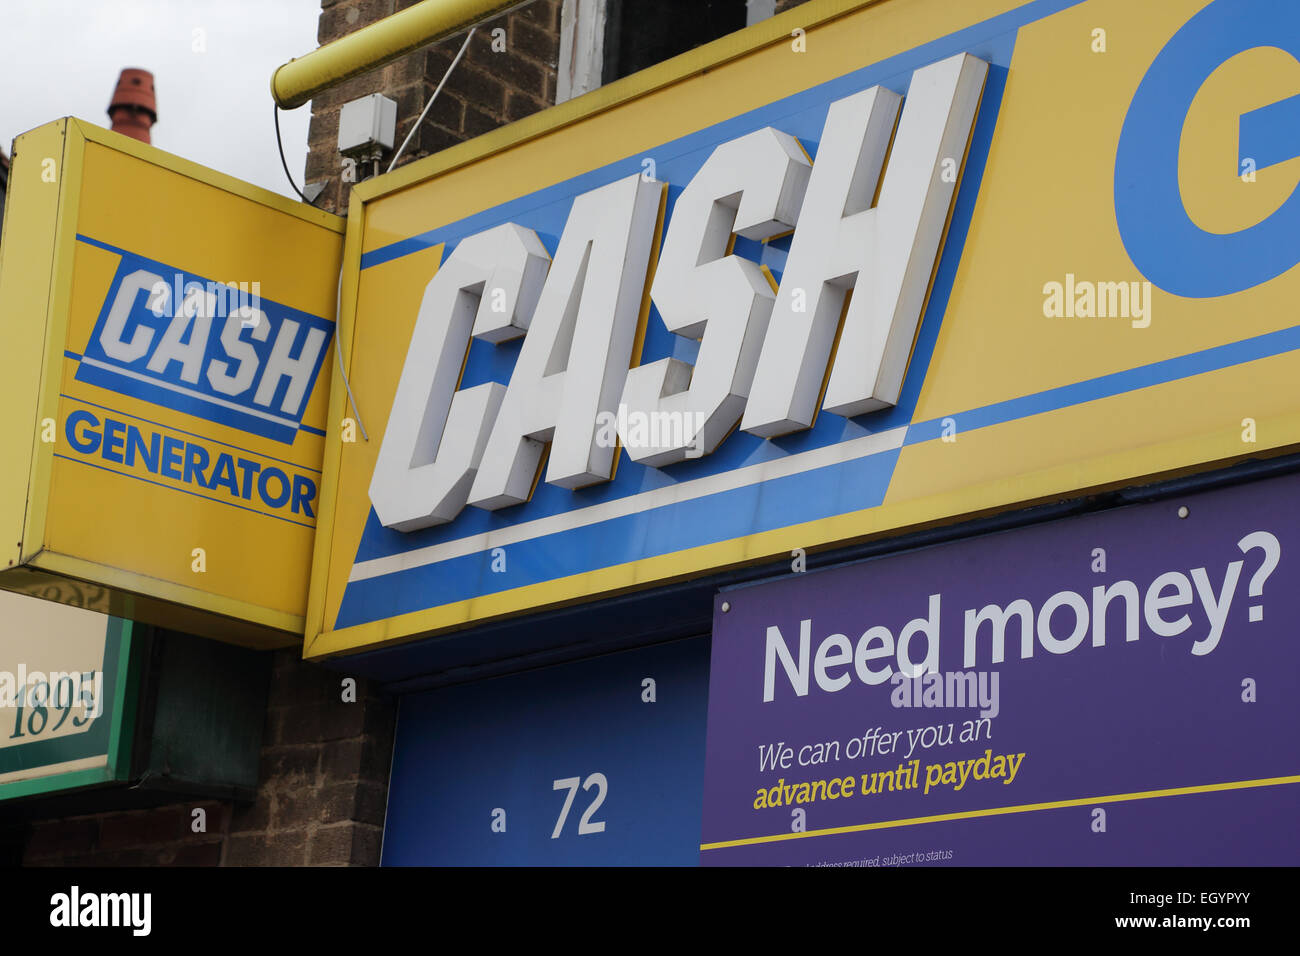 Shop sign offering payday loans - Stock Image